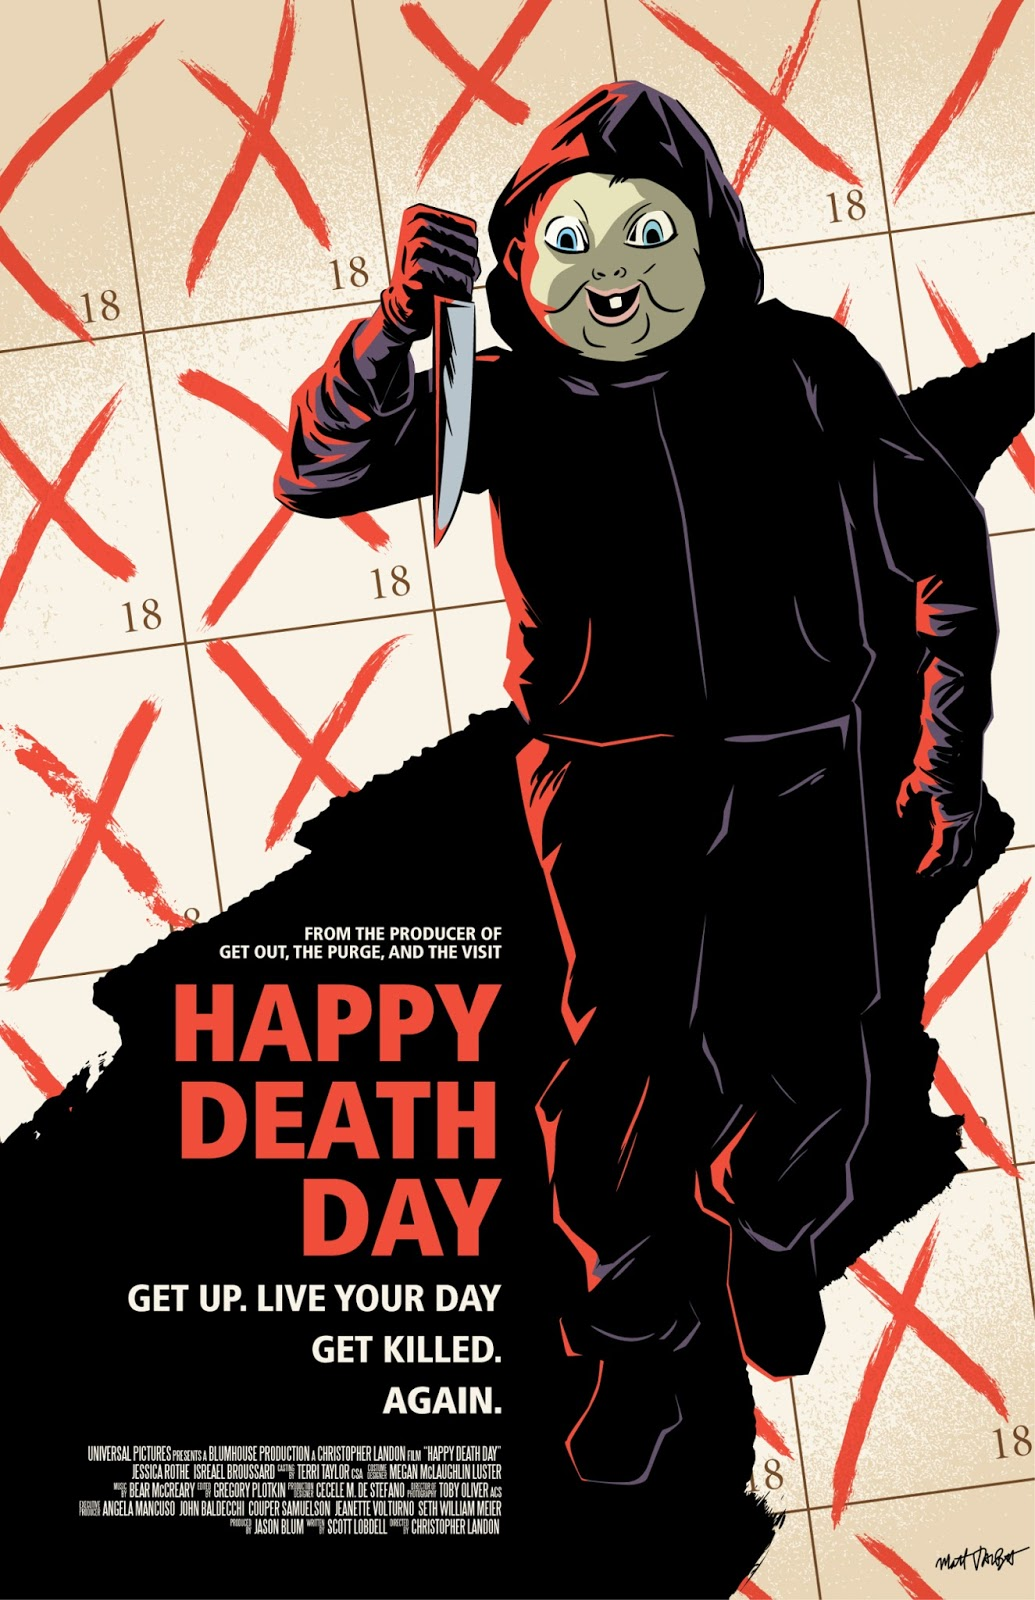 Narrative drive happy death day by scott lobdell happy death day by scott lobdell stopboris Choice Image